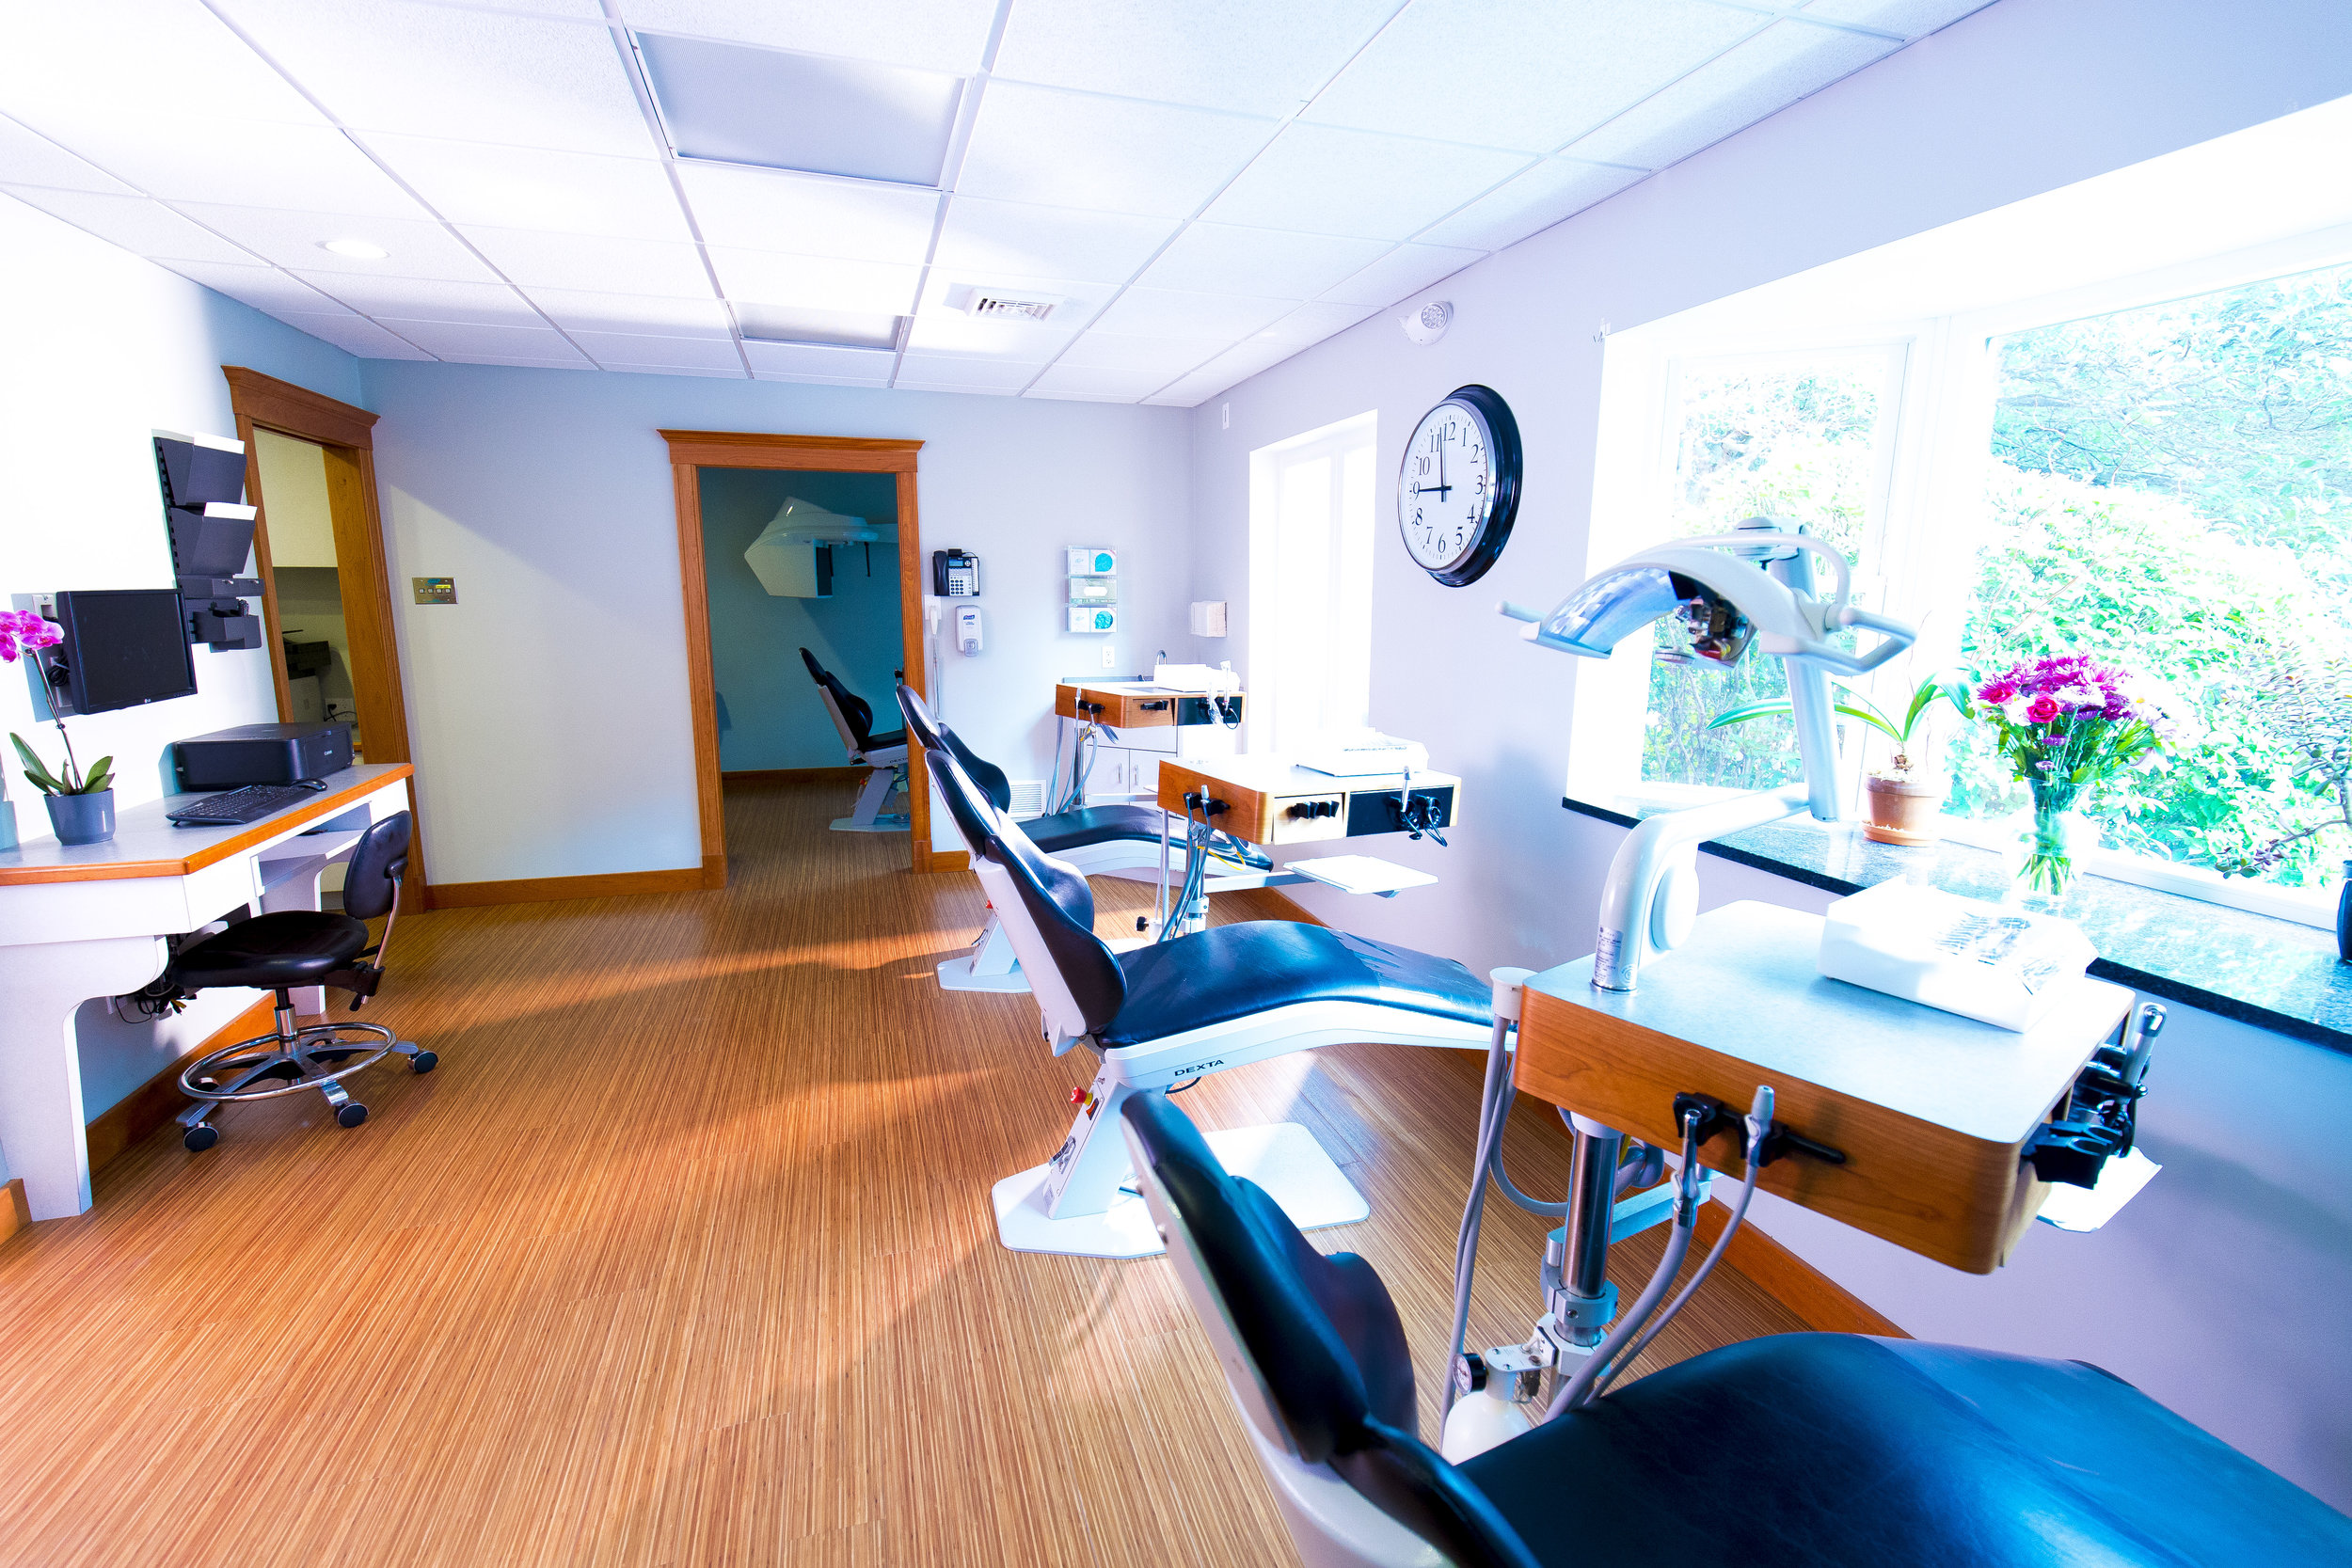 314A1810 Giovanni The Photographer-Boston Lorenz OrthodonticsCorporate Dental Dentist Orthodontics Headquarter  Lorenz Orthodontics.jpg